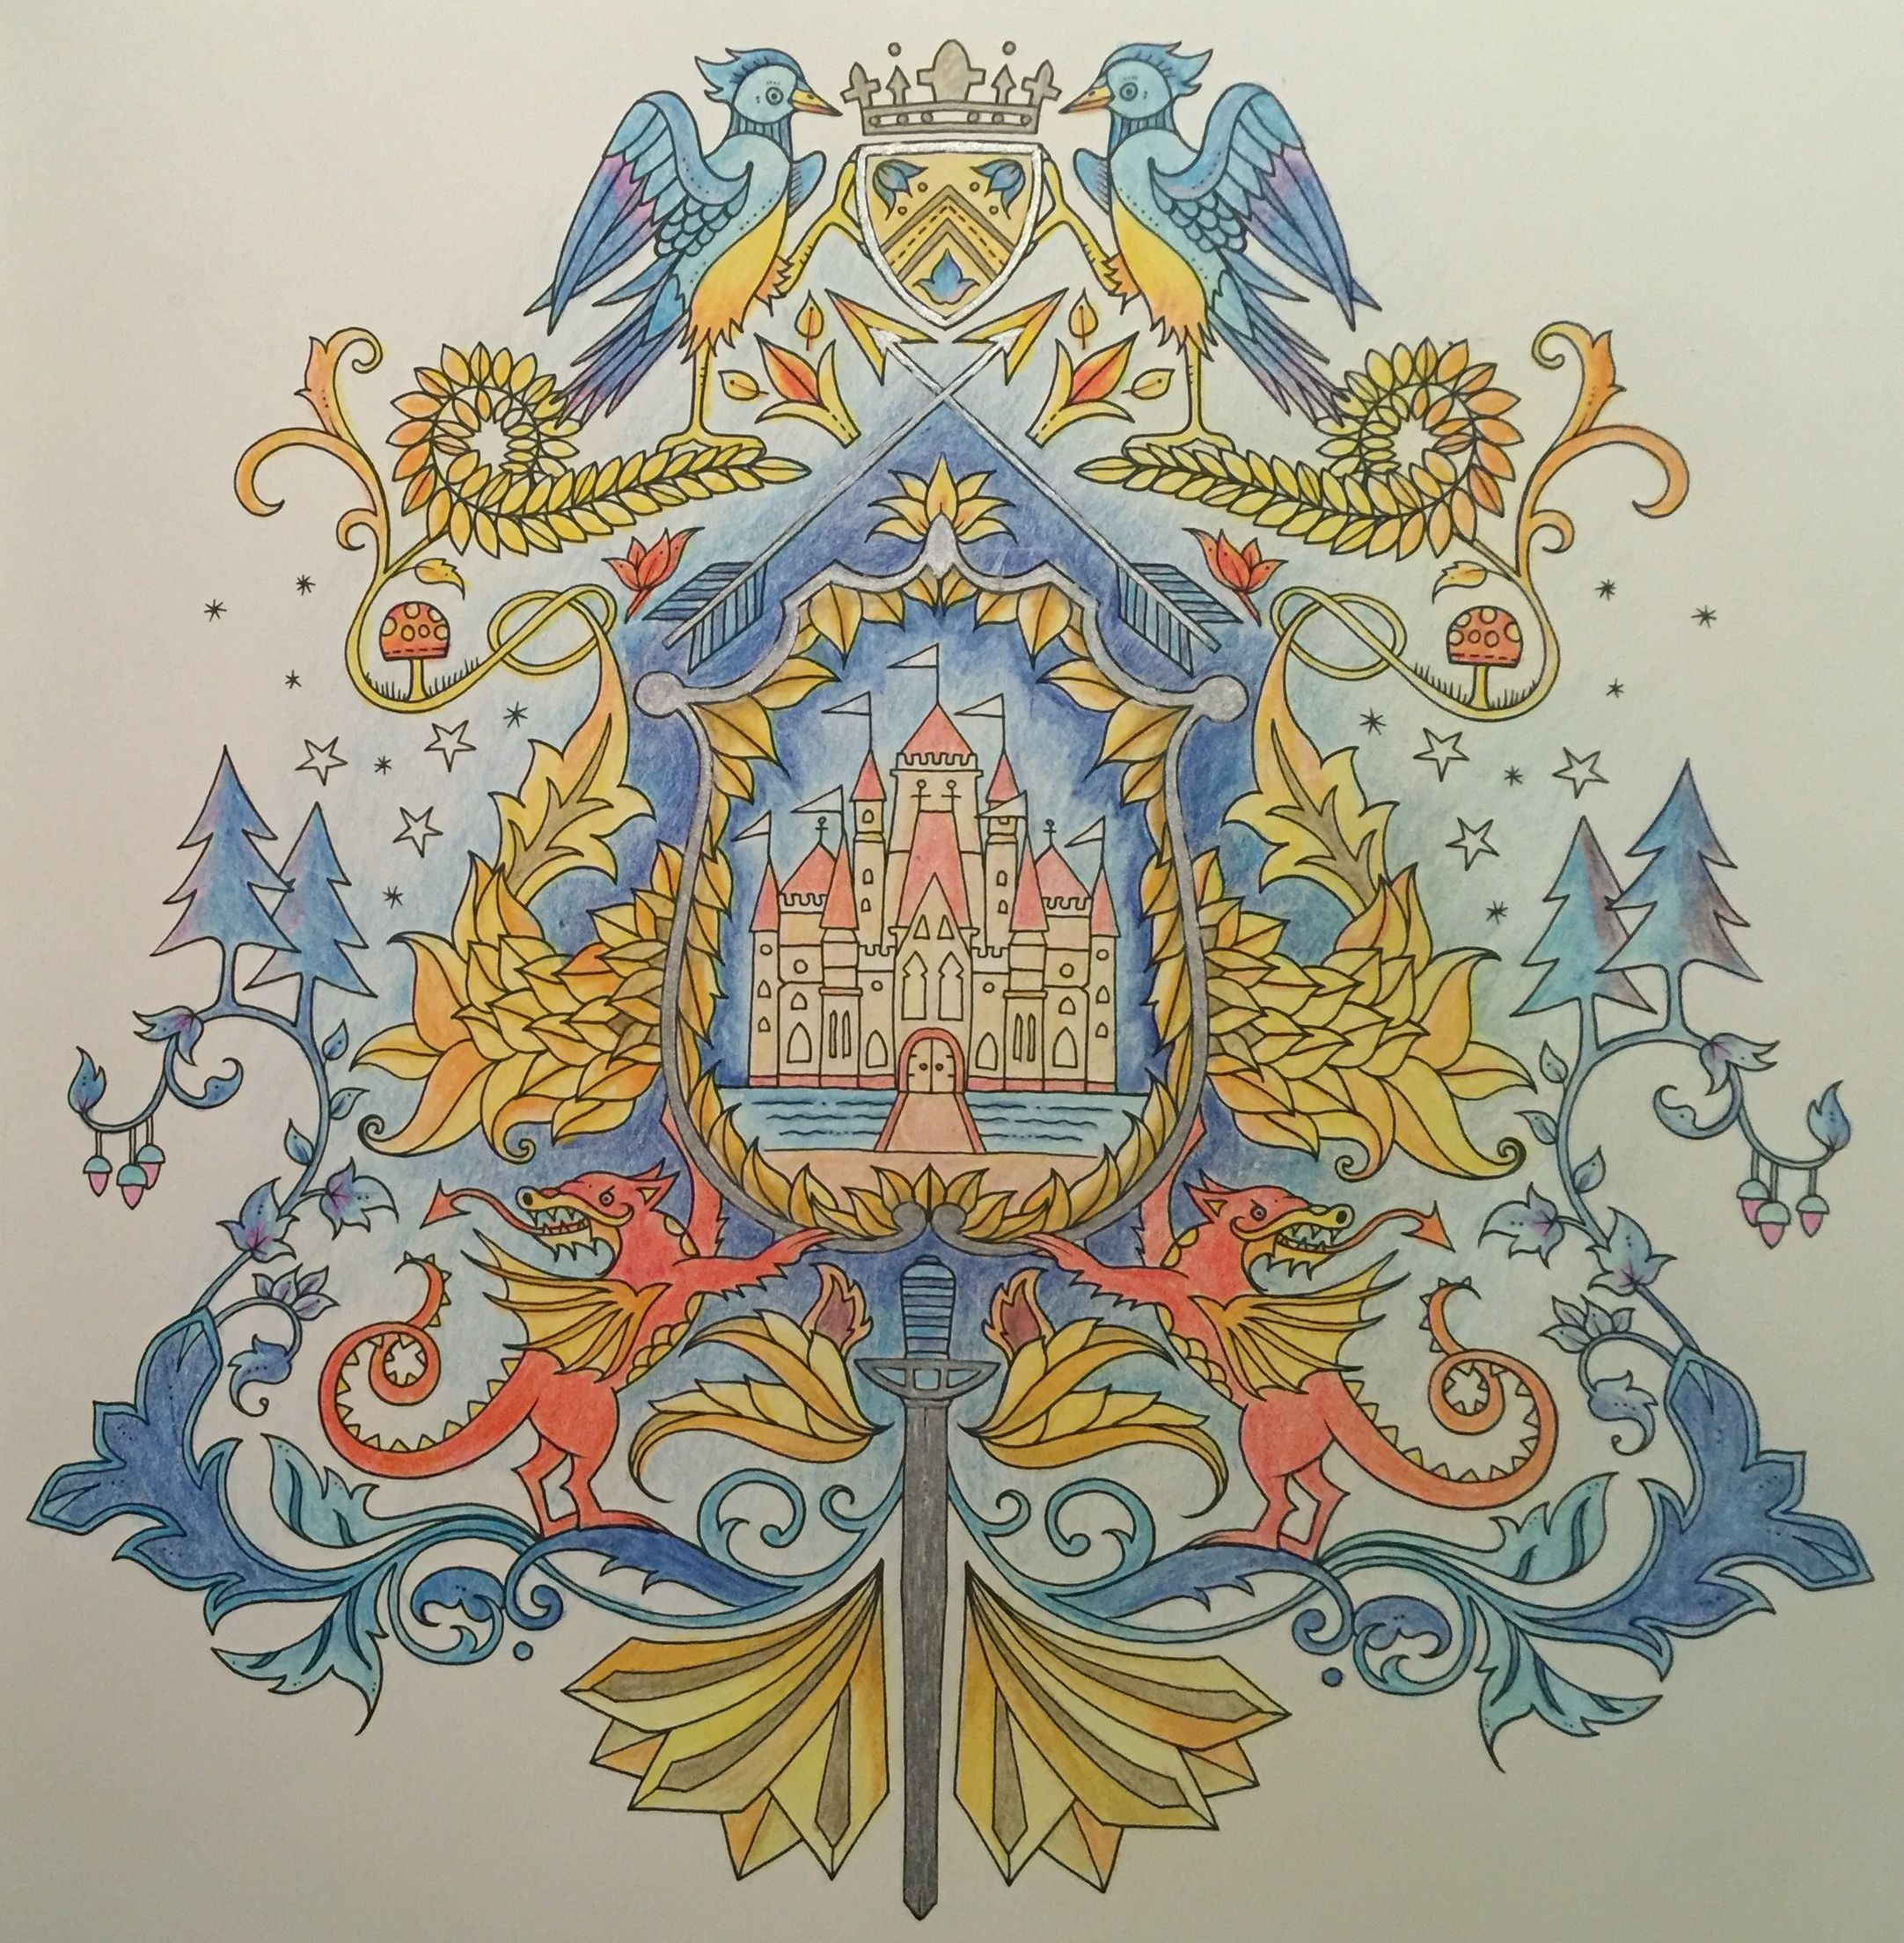 Enchanted Forest Coloring Book Coat Of Arms Colored In By Amber Using Monte Marte Pencils